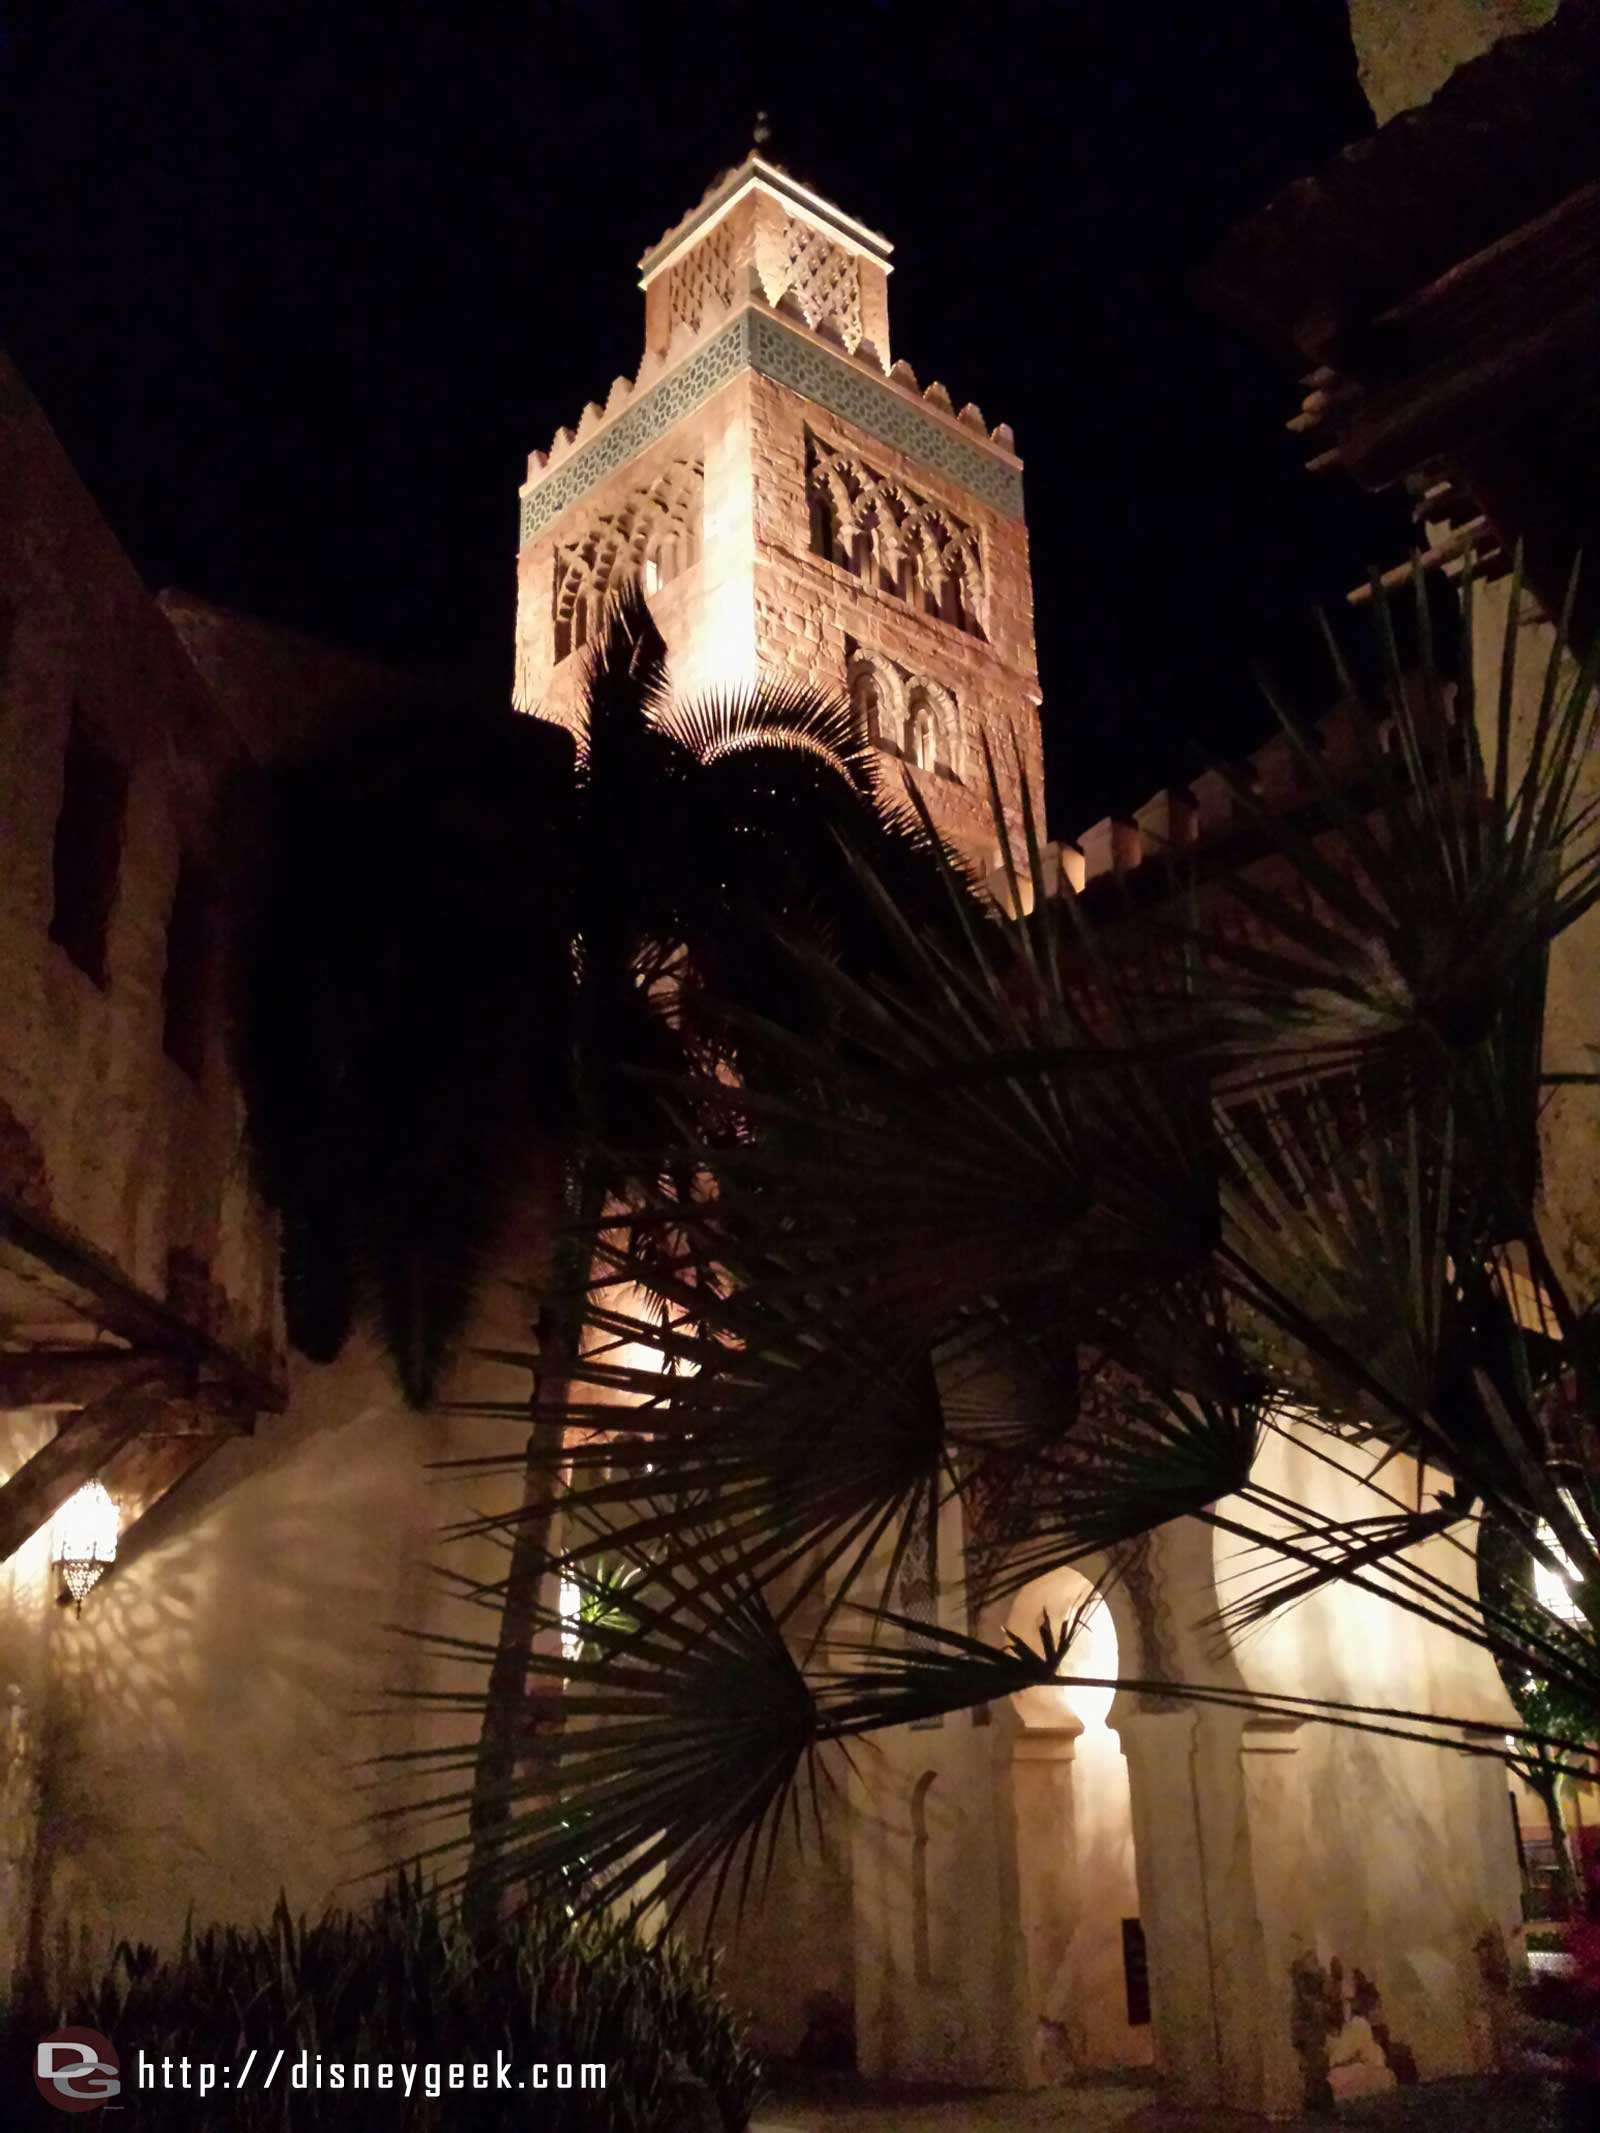 Morocco this evening at #Epcot #WDW